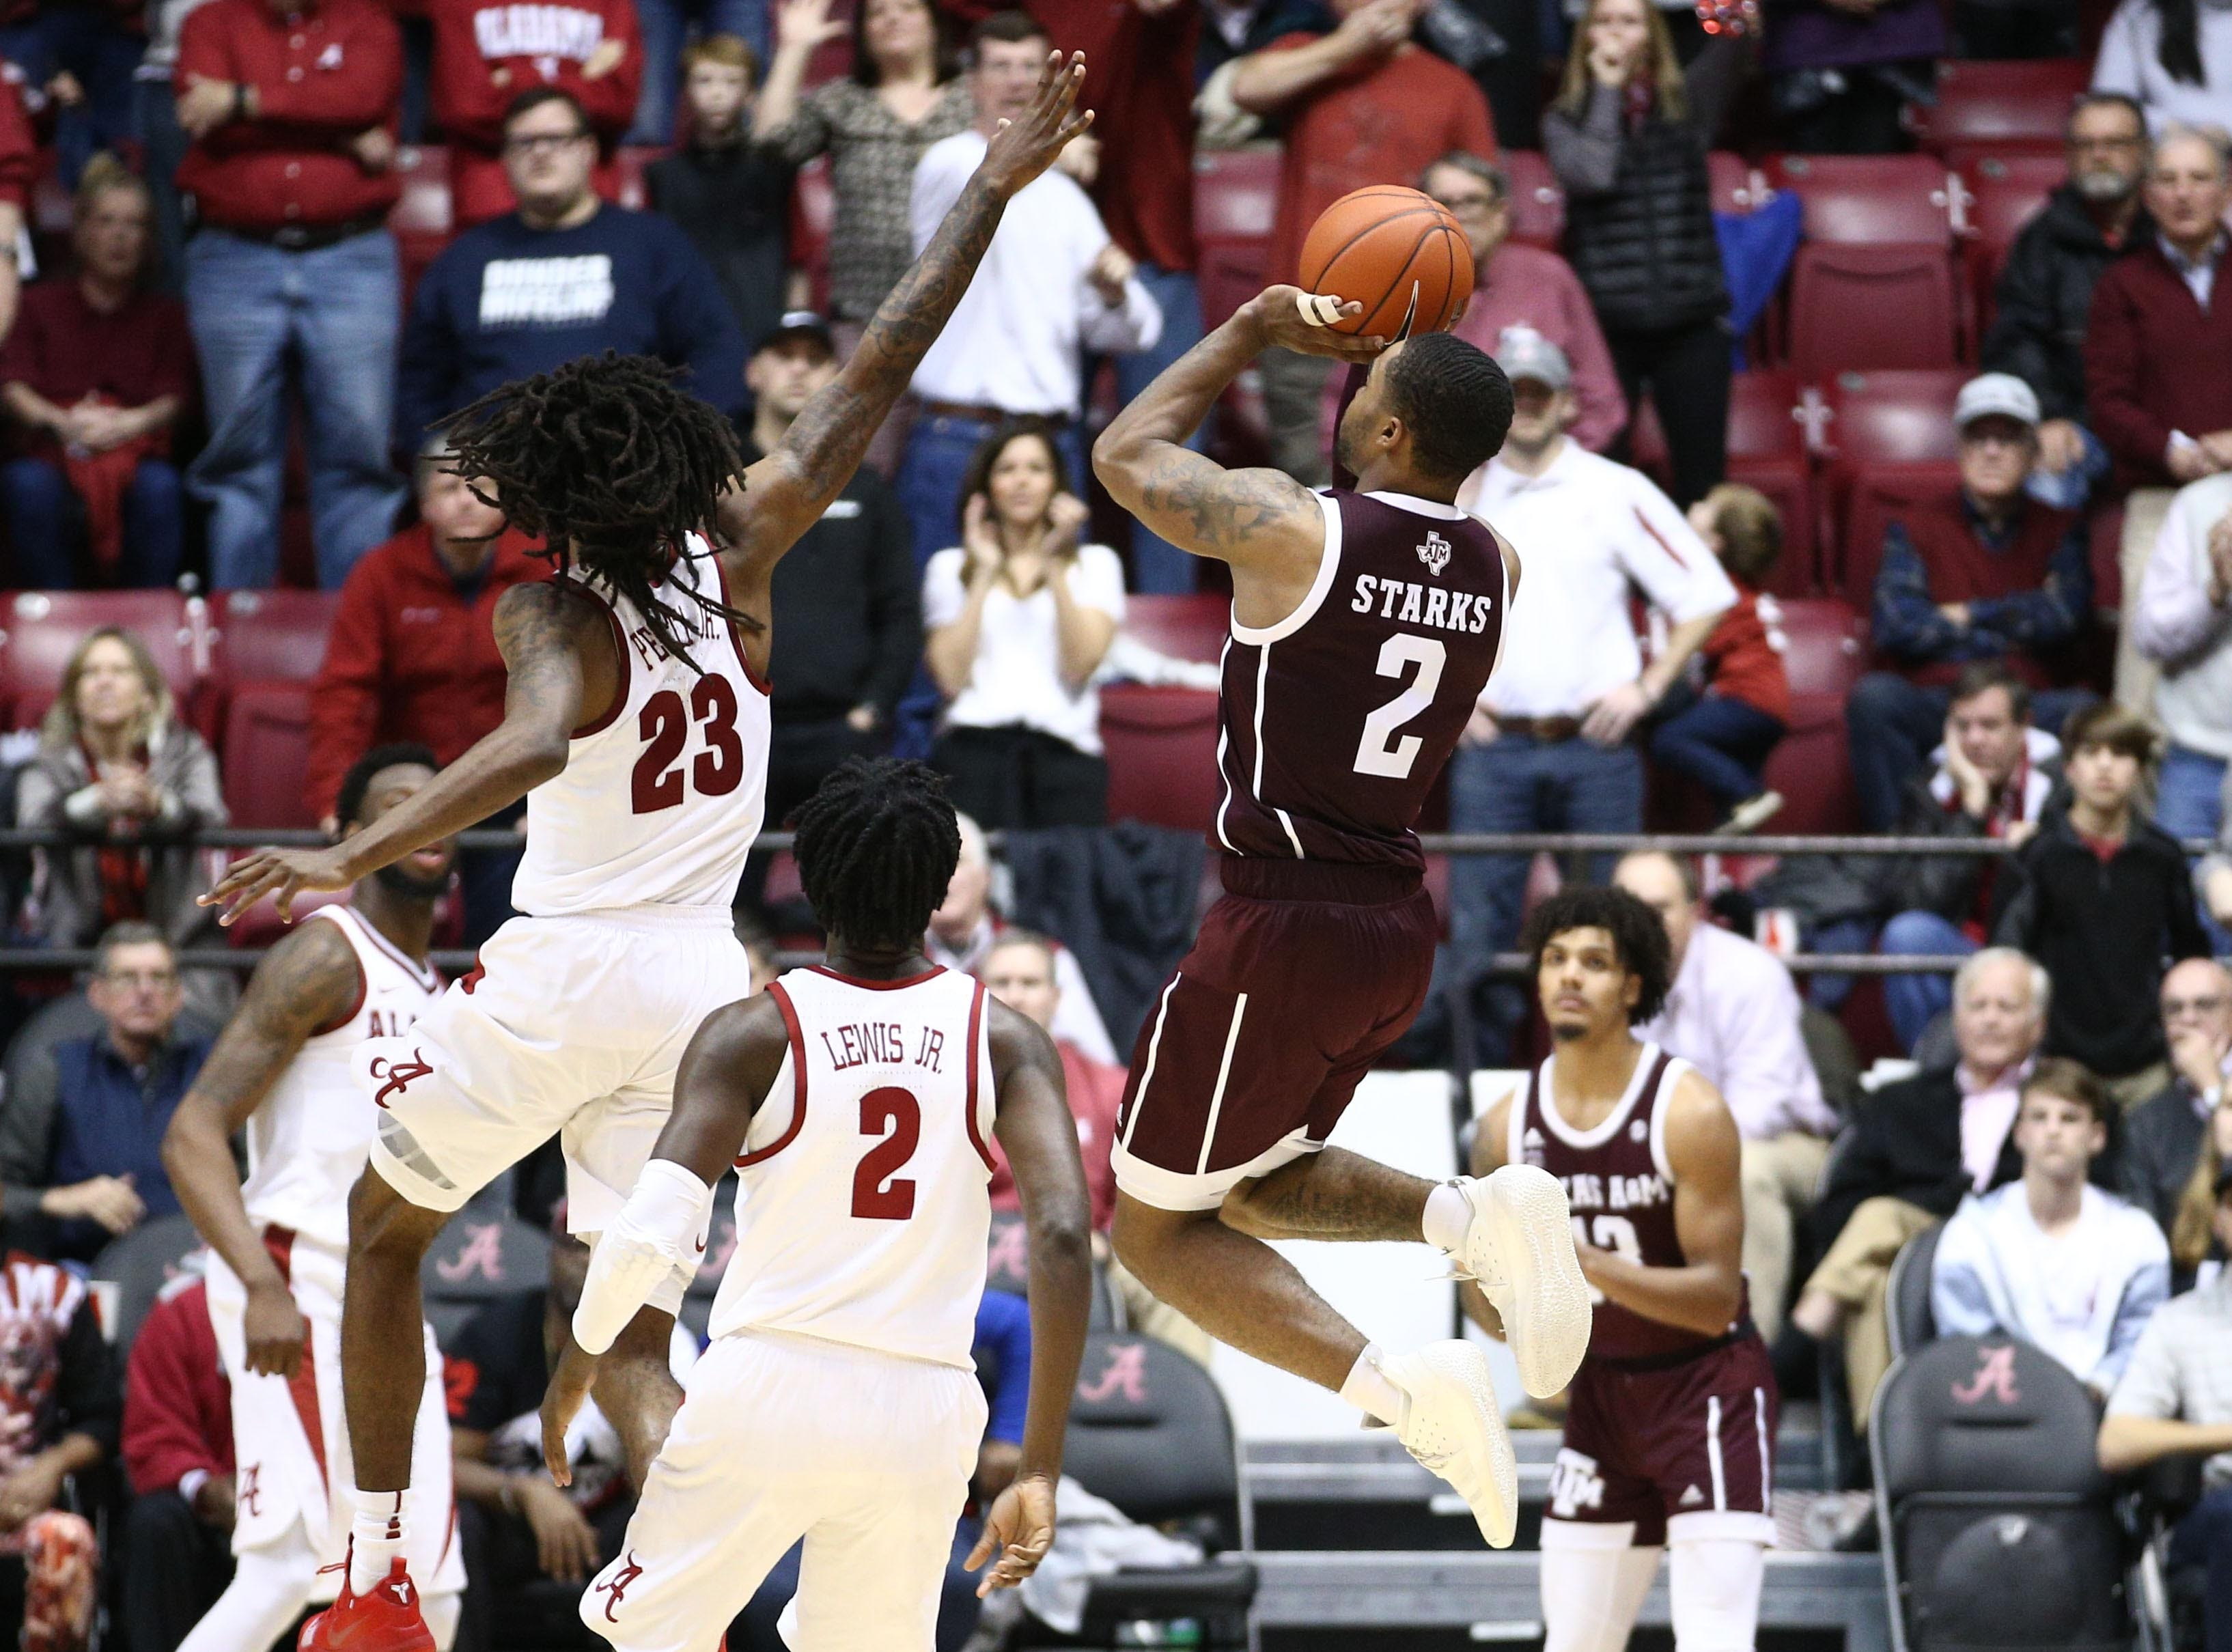 Jan 12, 2019; Tuscaloosa, AL, USA; Texas A&M Aggies guard TJ Starks (2) makes a shot as time expires as Alabama Crimson Tide guard John Petty (23) defends during the second half at Coleman Coliseum. Mandatory Credit: Marvin Gentry-USA TODAY Sports